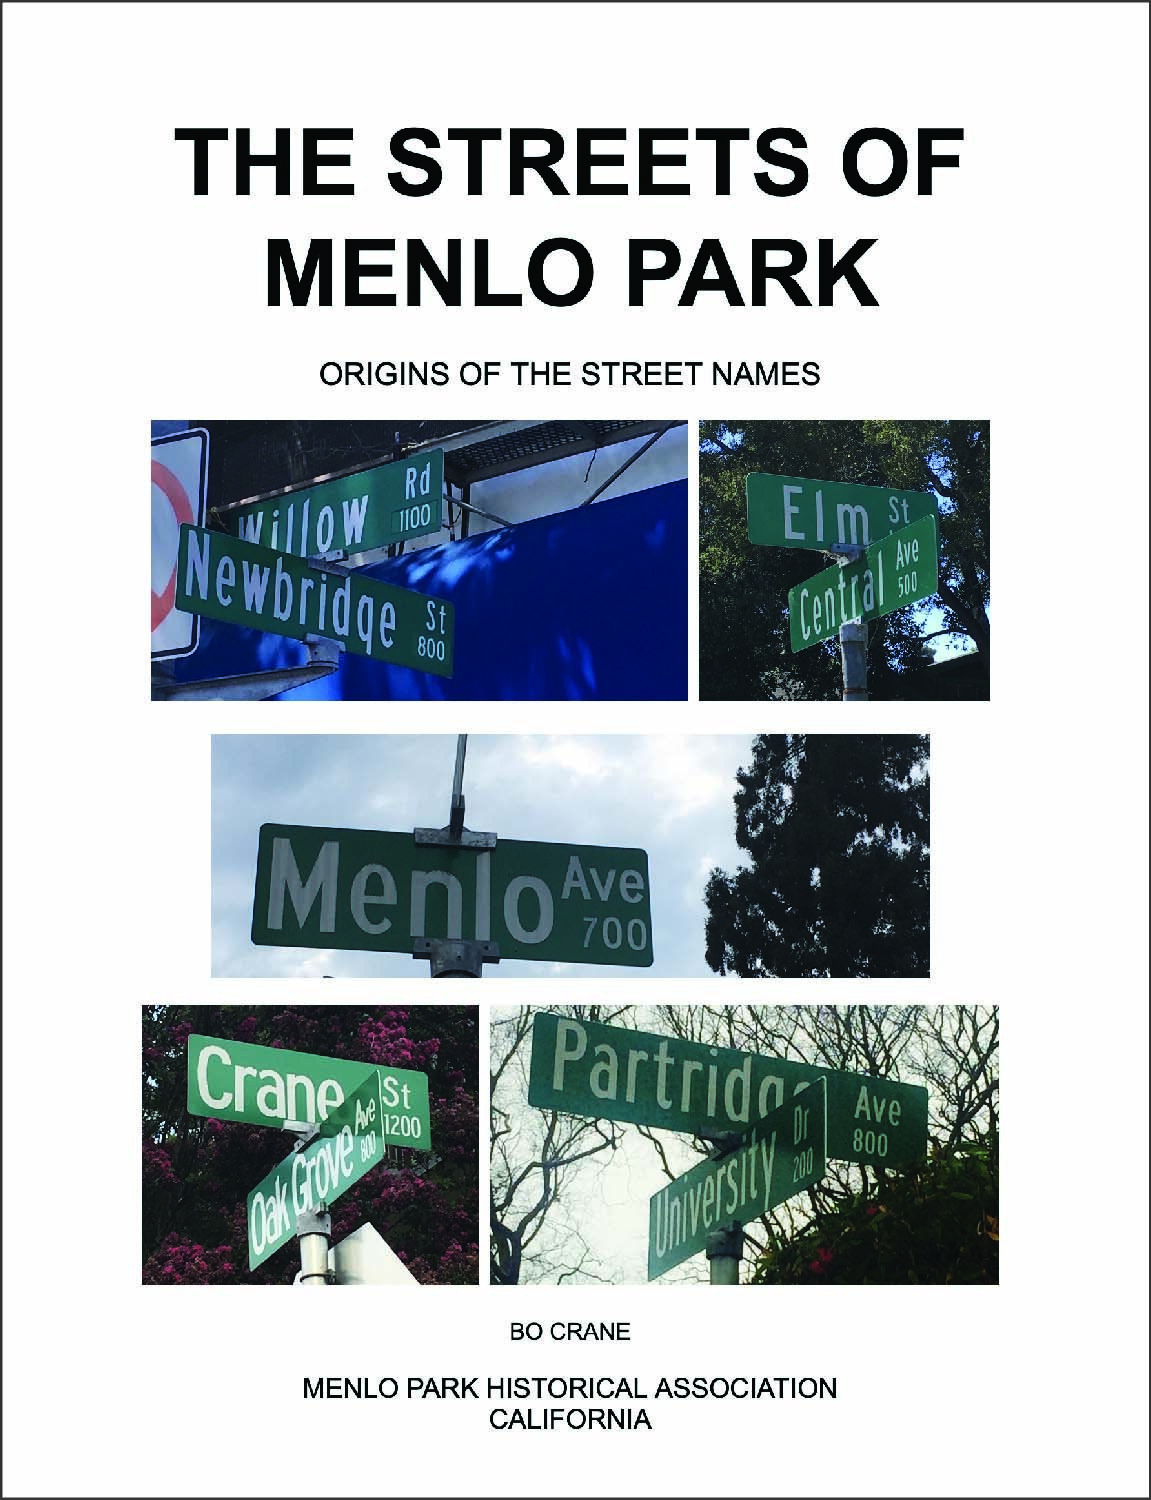 The Streets of Menlo Park/Origins of Street Names by Bo Crane